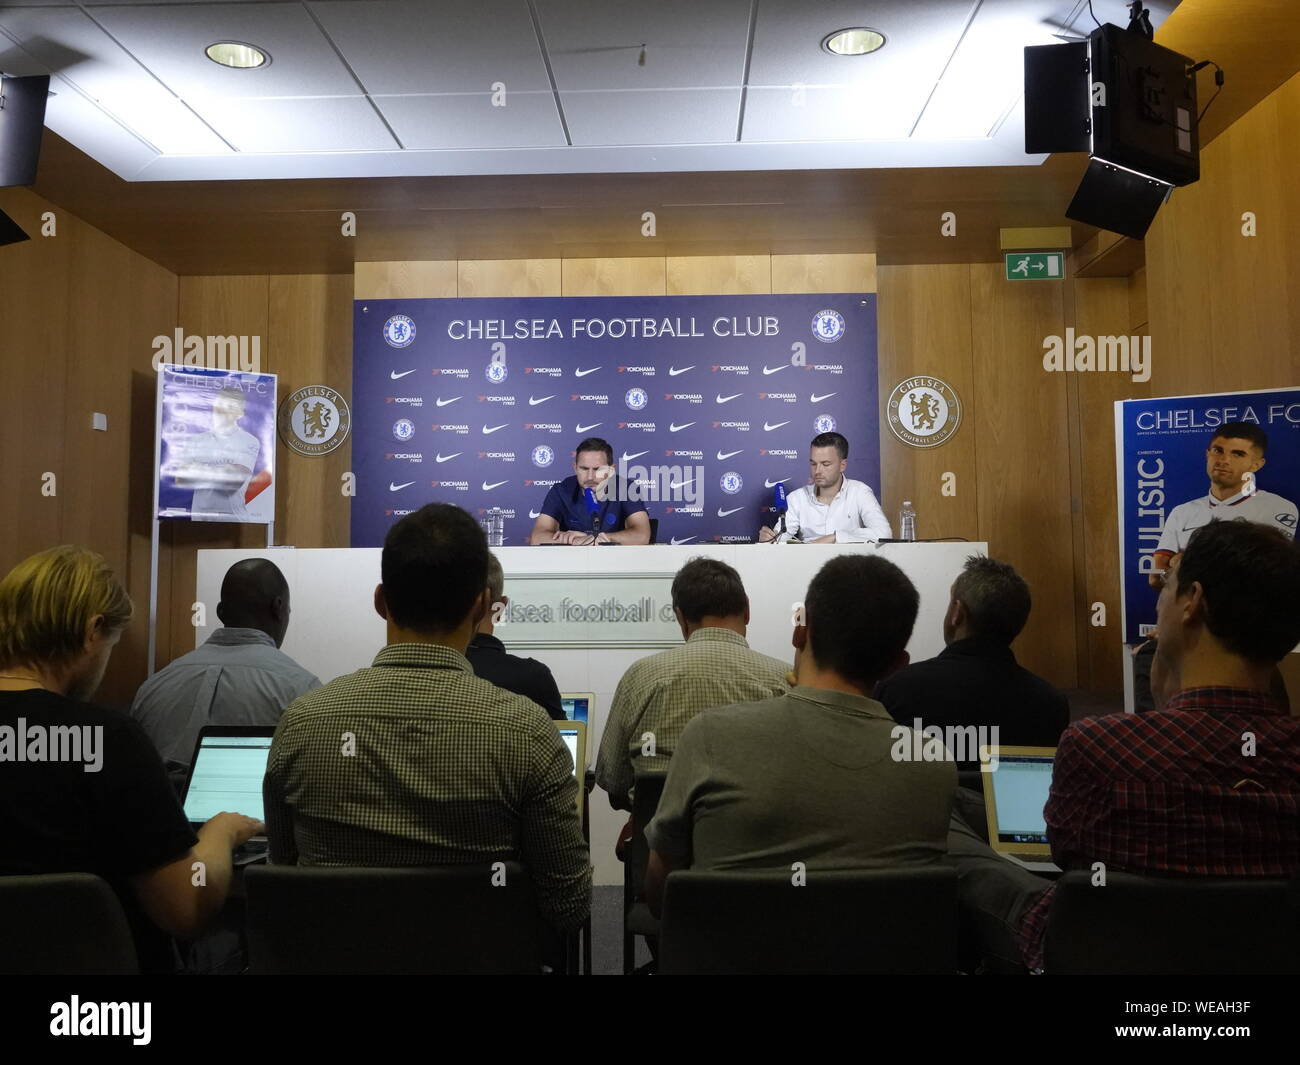 Cobham, UK. 30th Aug, 2019. Cobham, Surrey, UK., . Frank Lampard, Chelsea Football Club Manager addresses the media about Chelsea's Premier League match against Sheffield United FC at Stamford Bridge on Saturday. 31st. August, 2019 Credit: Motofoto/Alamy Live News Stock Photo